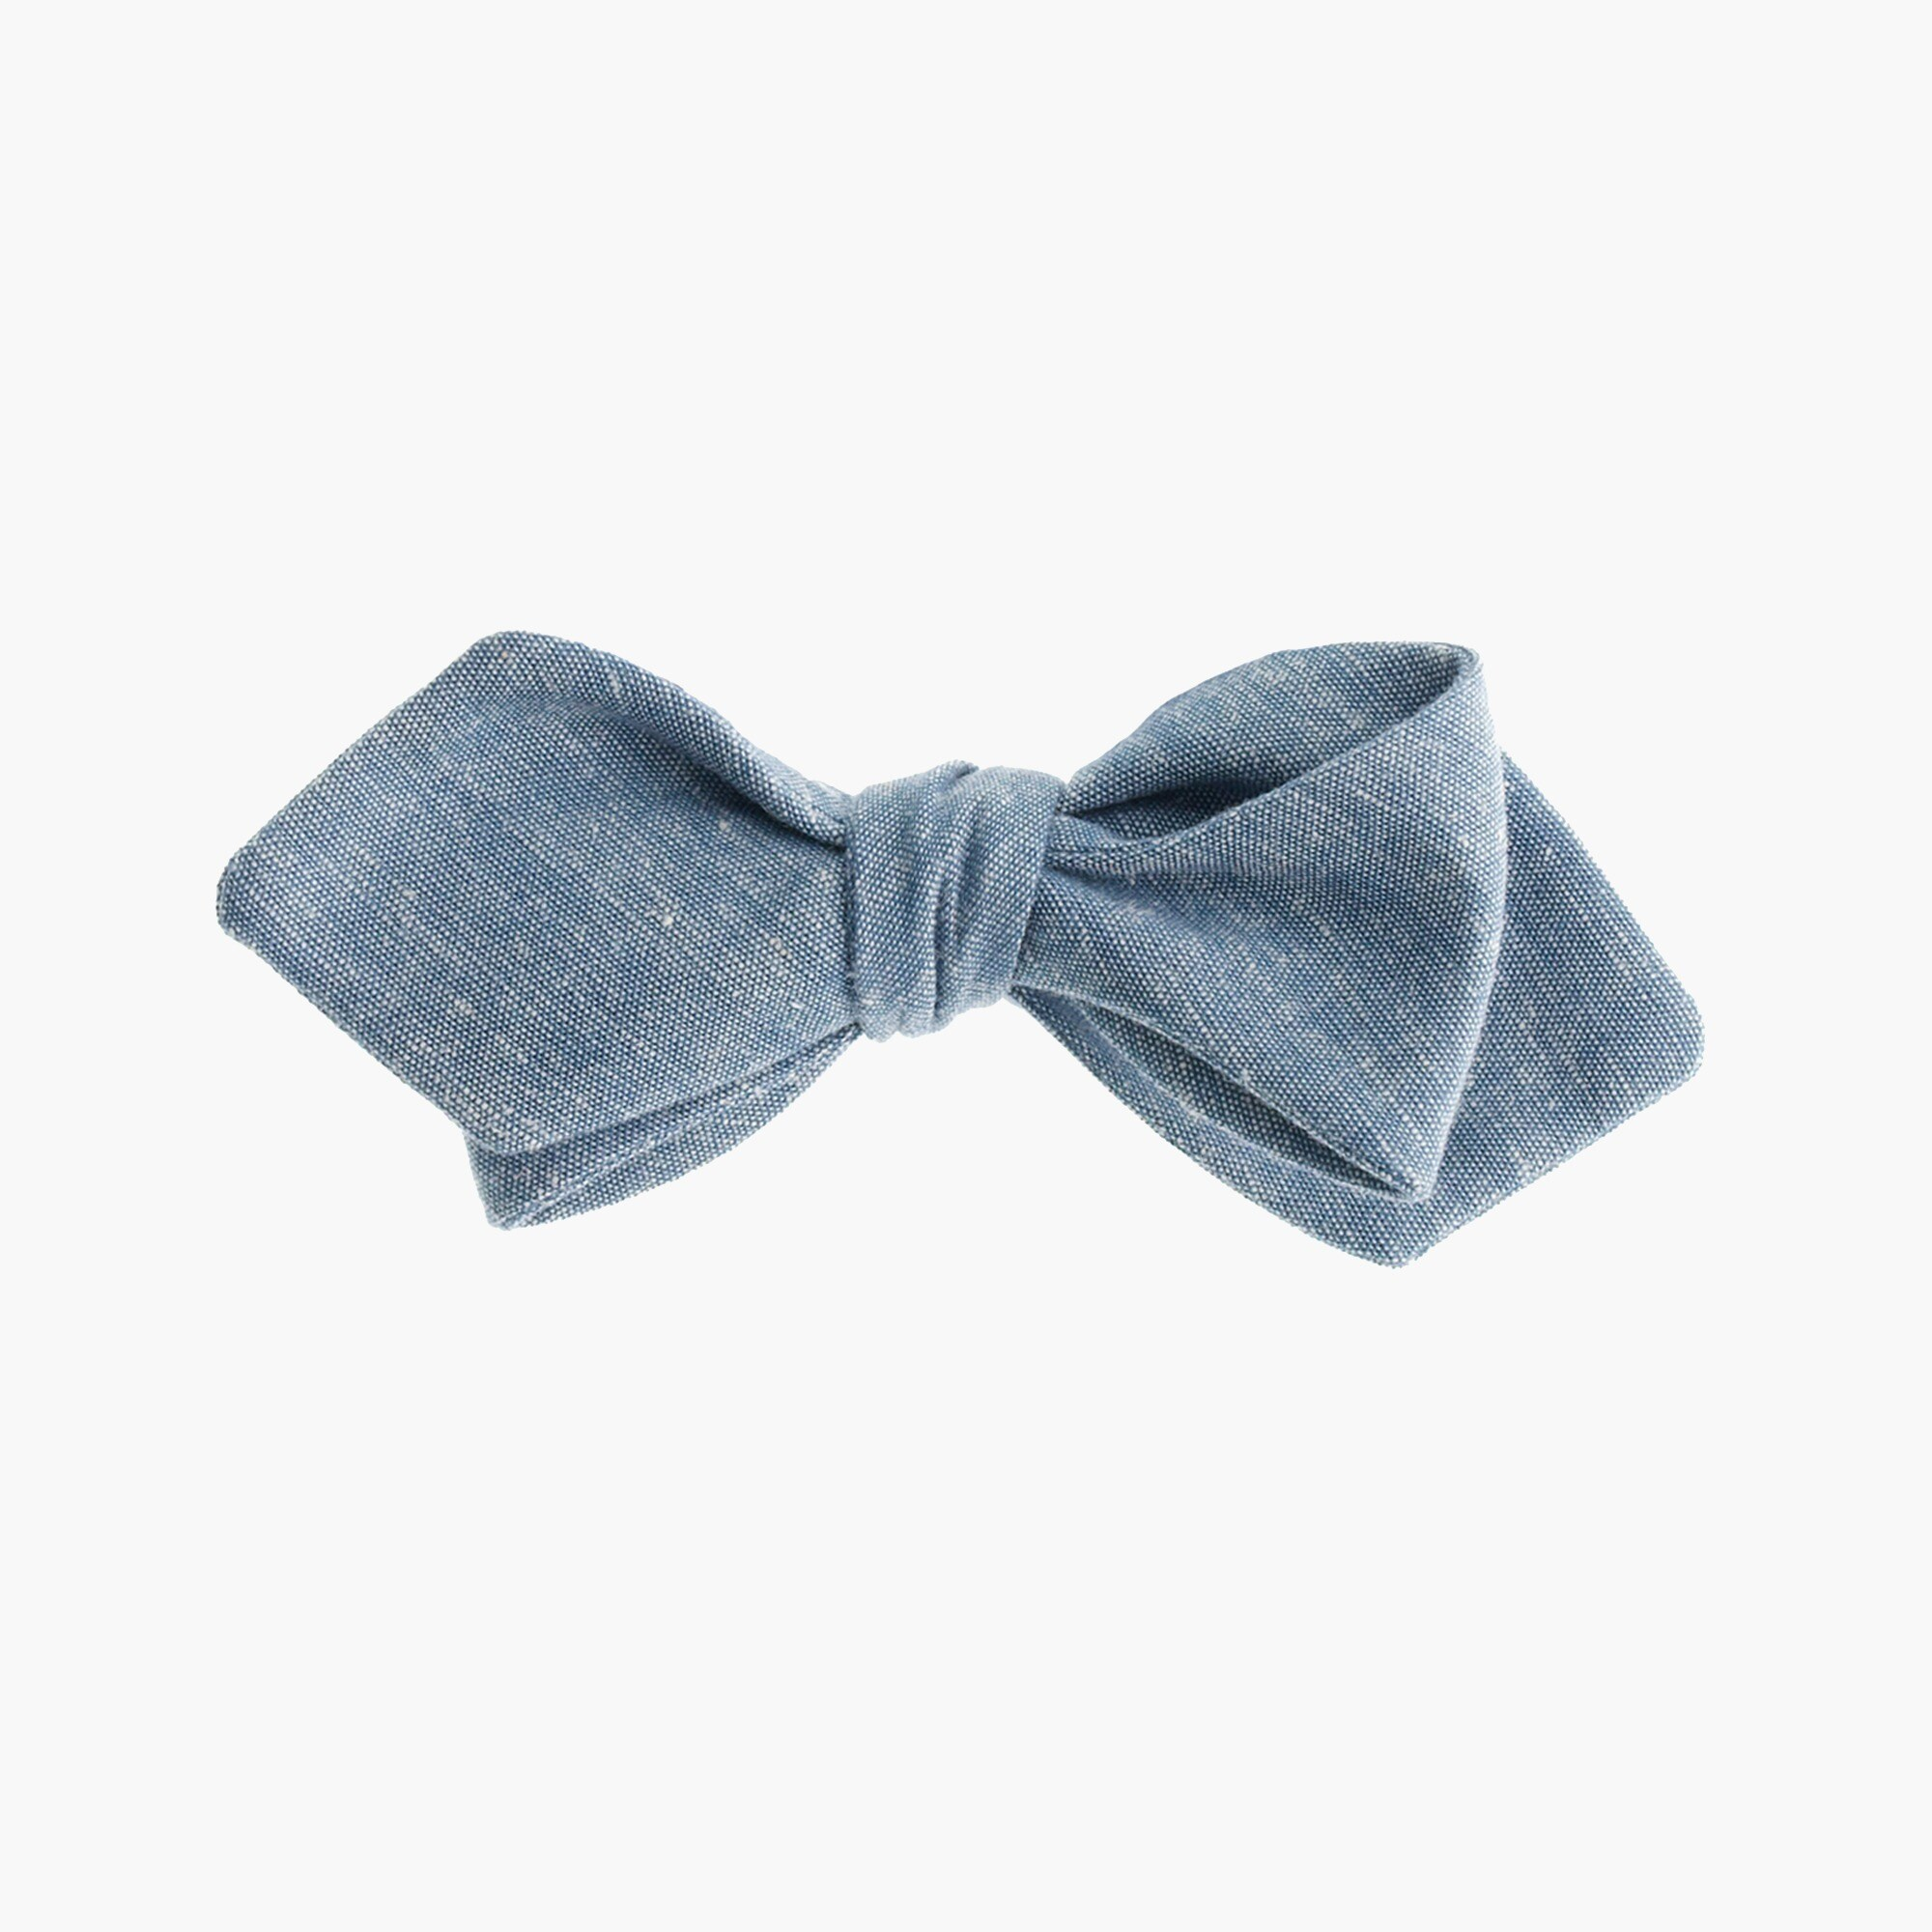 Image 1 for Chambray bow tie